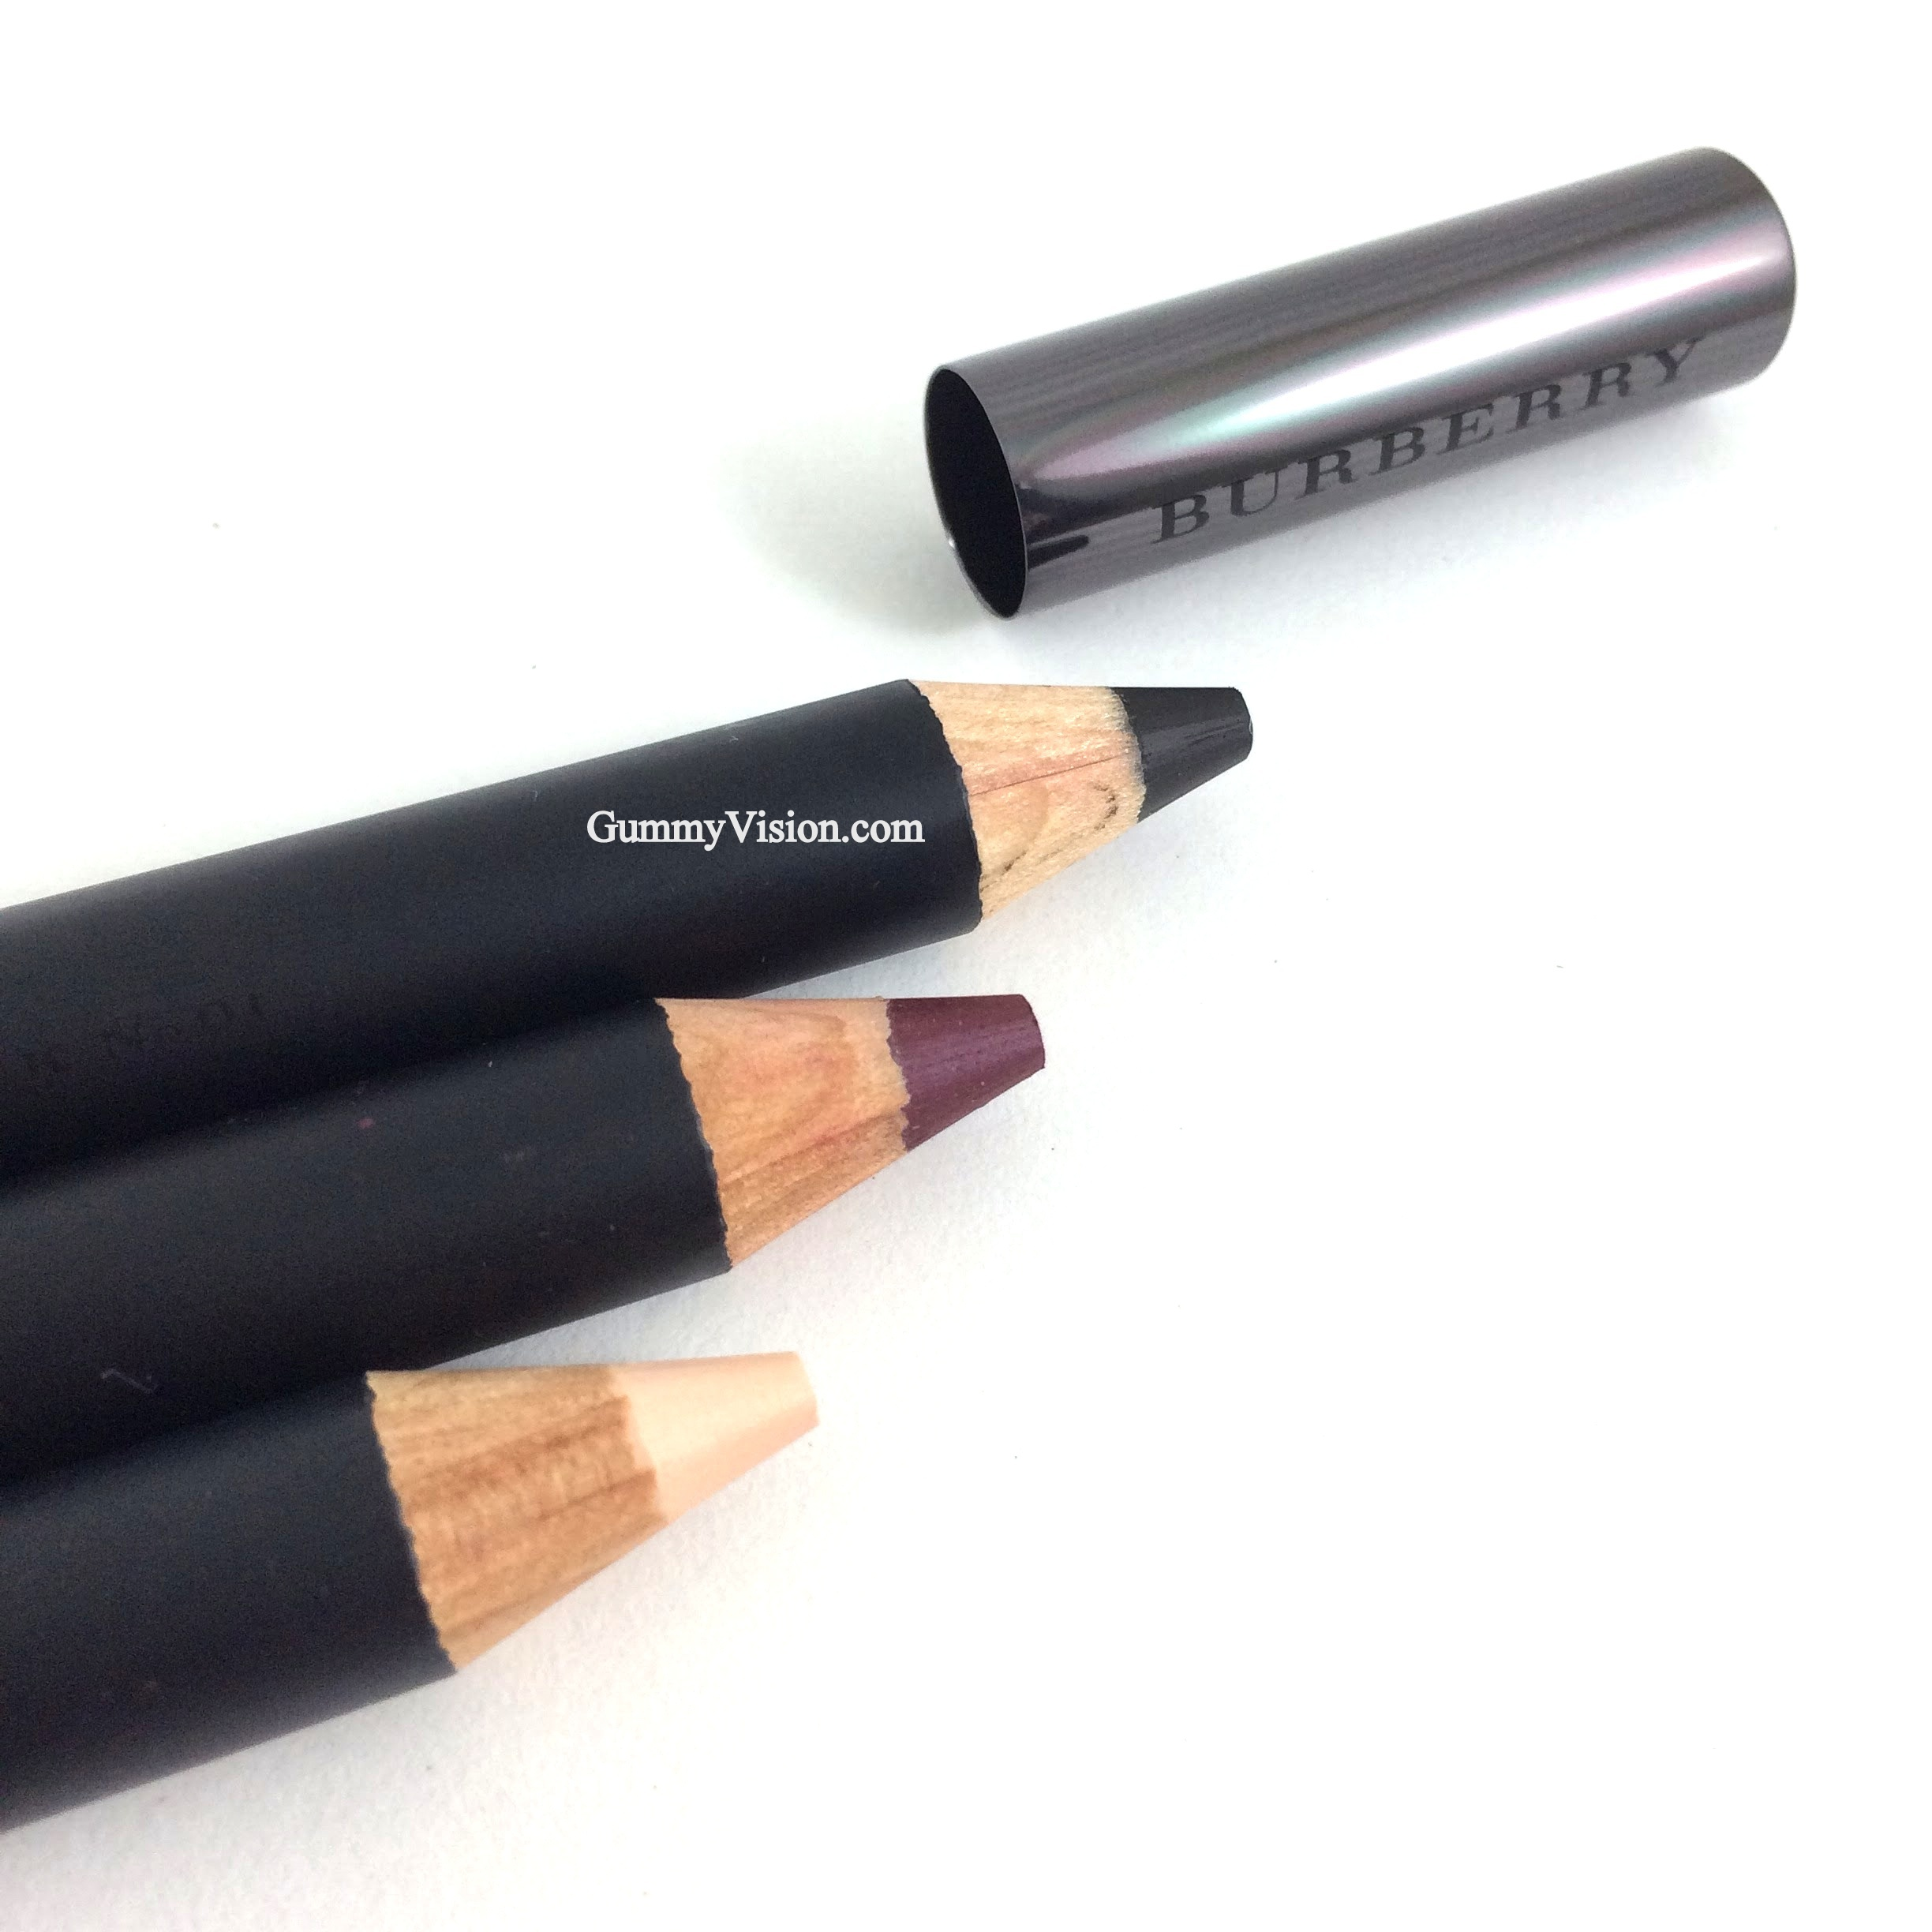 Review Burberry Effortless Kohl Multi Use Pencil In Poppy